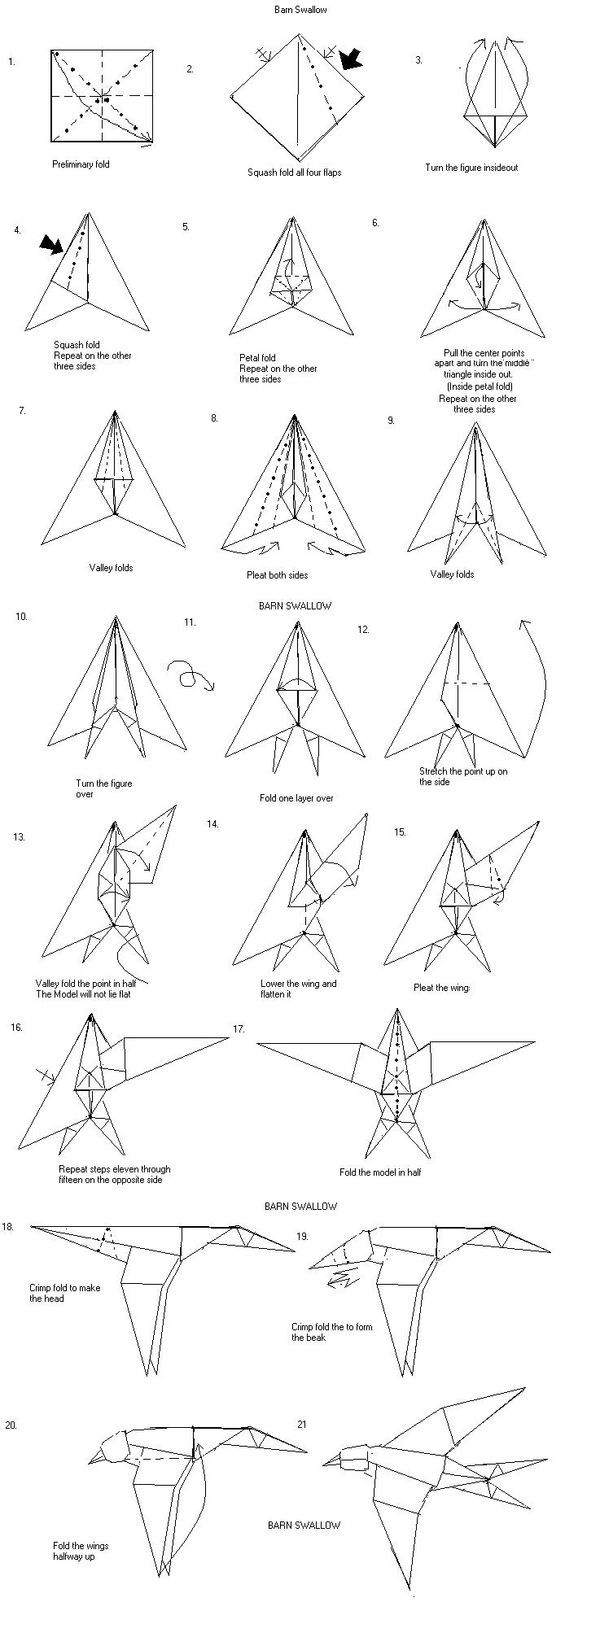 26 Best Papier Images On Pinterest Origami Paper Crafts And 3d Swan Diagram Http Howtoorigamicom Origamiswanhtml Barn Swallow